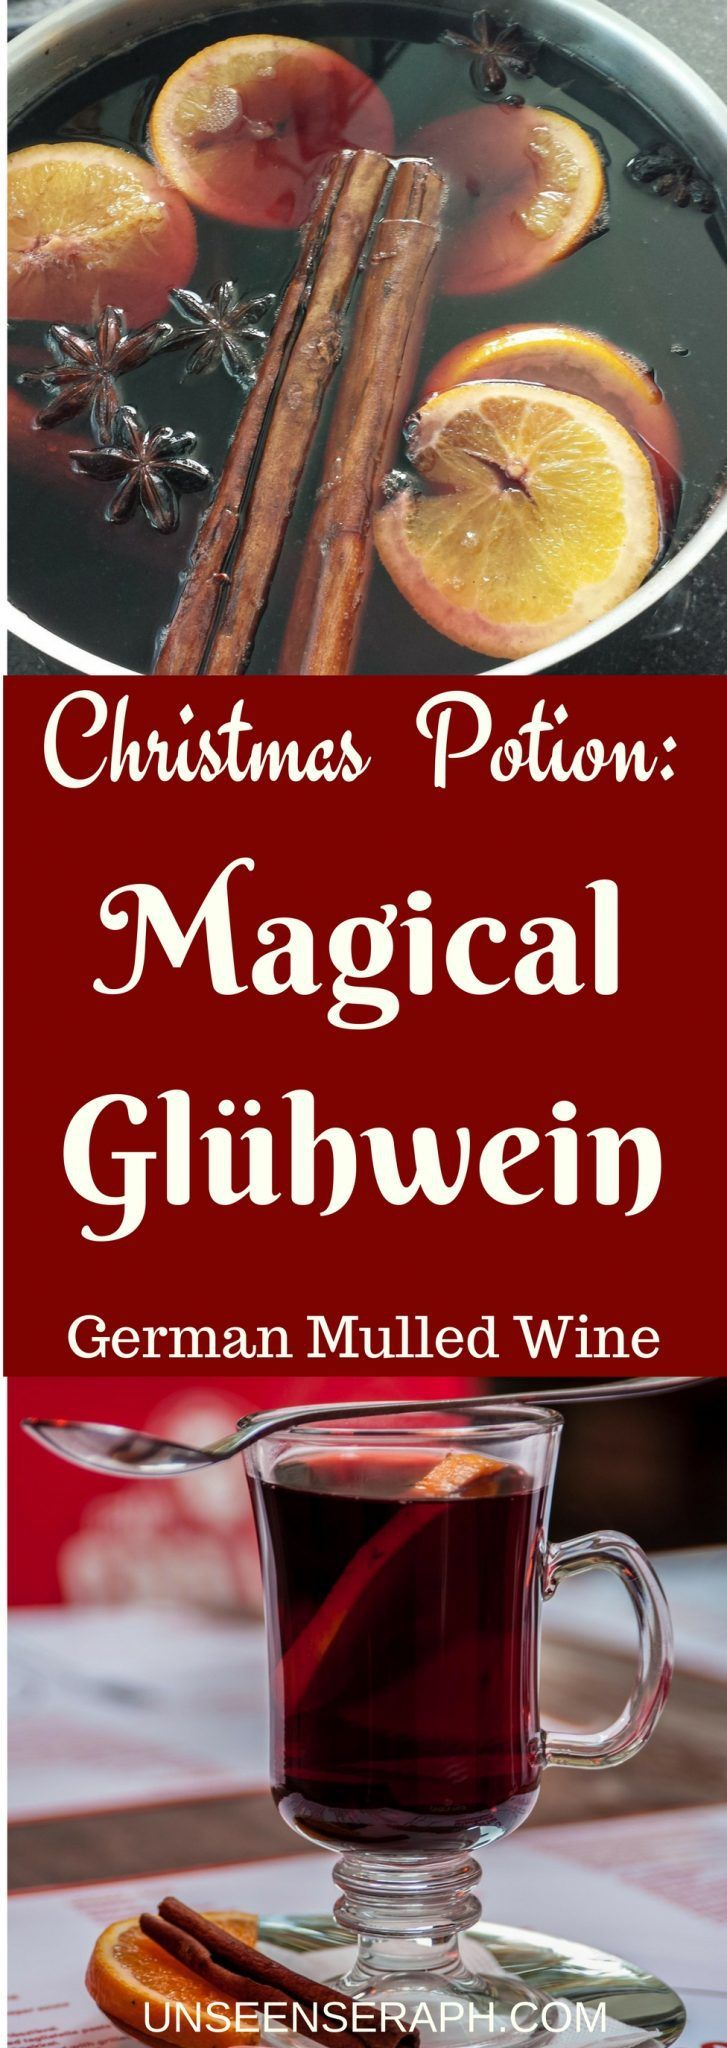 A Delicious Gluhwein German Mulled Wine Recipe That Doubles As A Drinkable Magick Potion For Christ German Mulled Wine Recipe Mulled Wine Recipe Wine Recipes